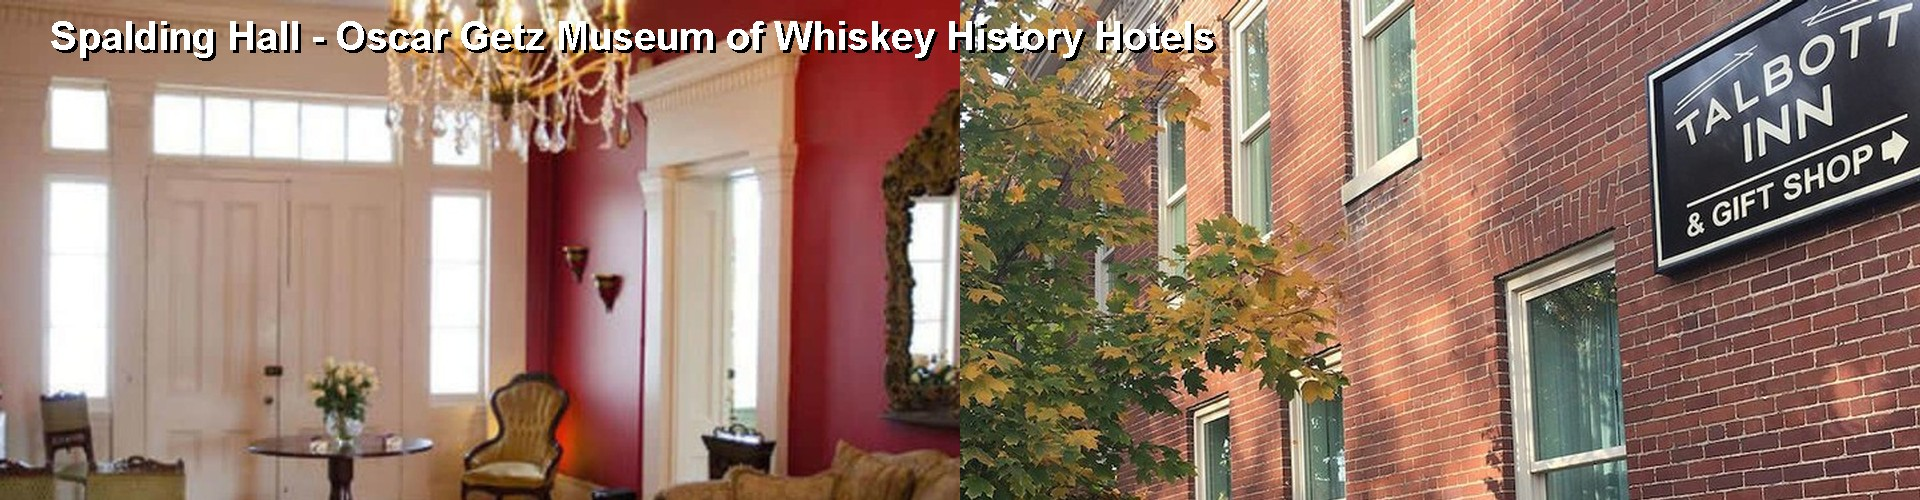 5 Best Hotels near Spalding Hall - Oscar Getz Museum of Whiskey History